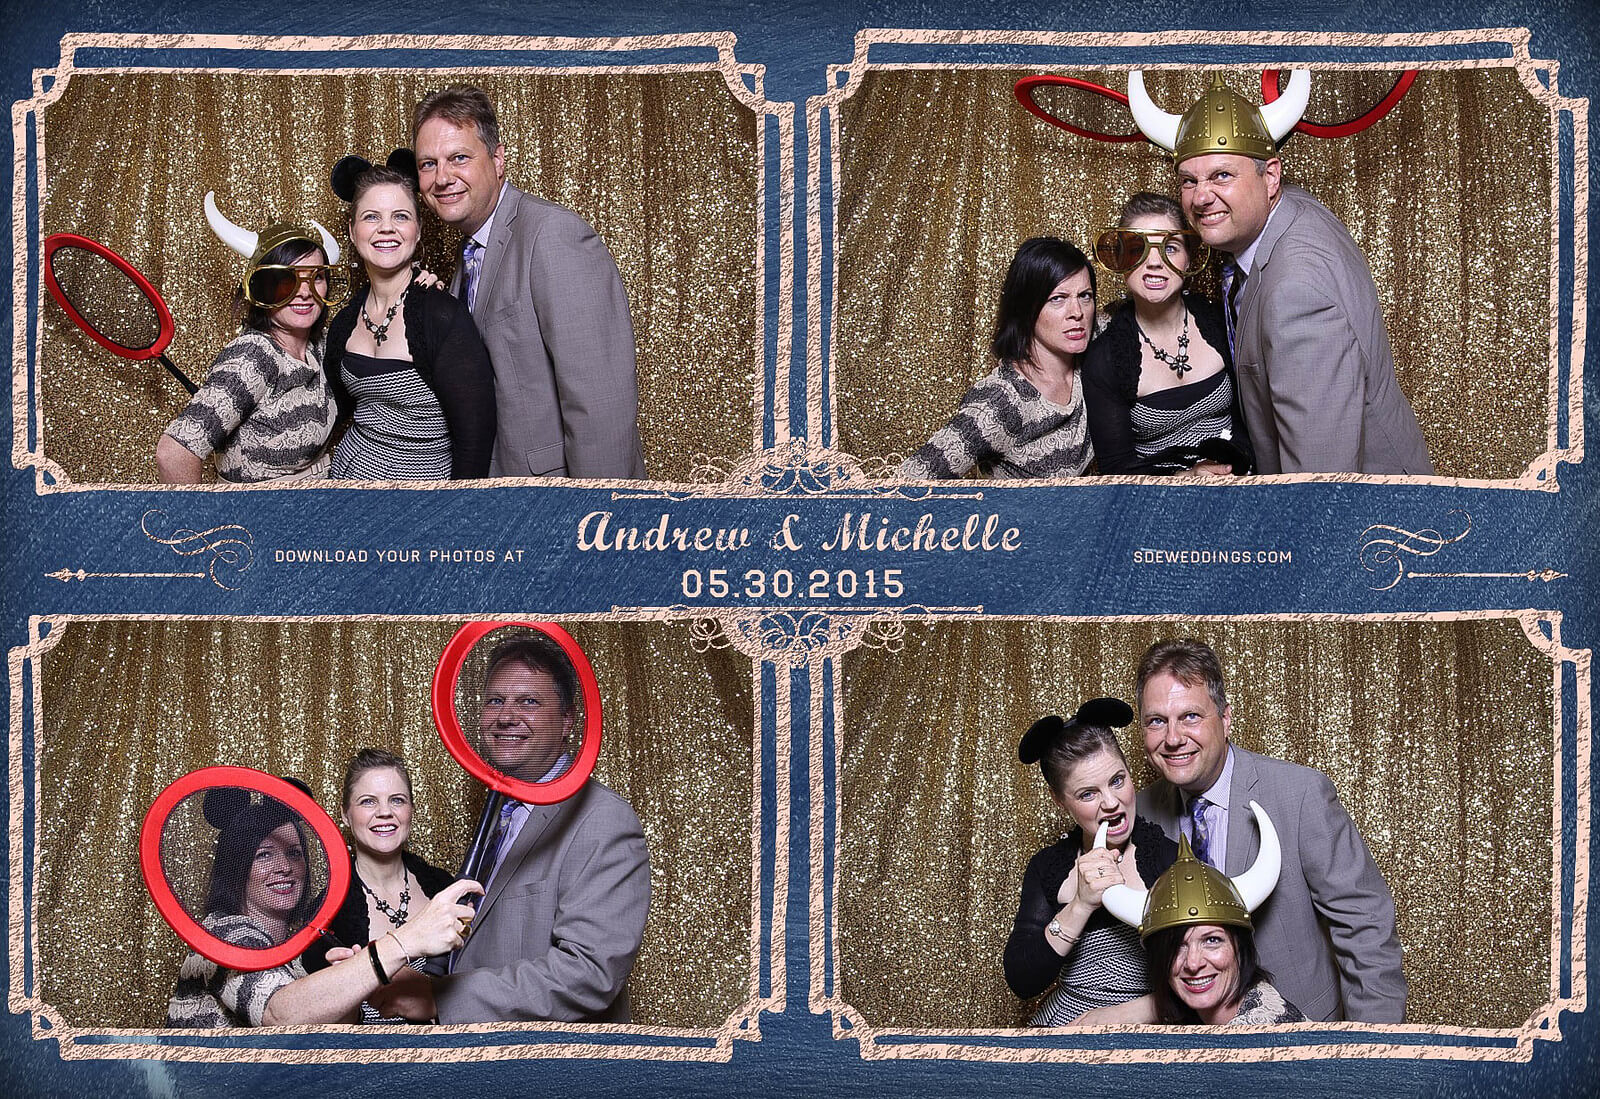 Toronto Police Wedding Photobooth at Peel Regional Police Association Banquet Hall 5